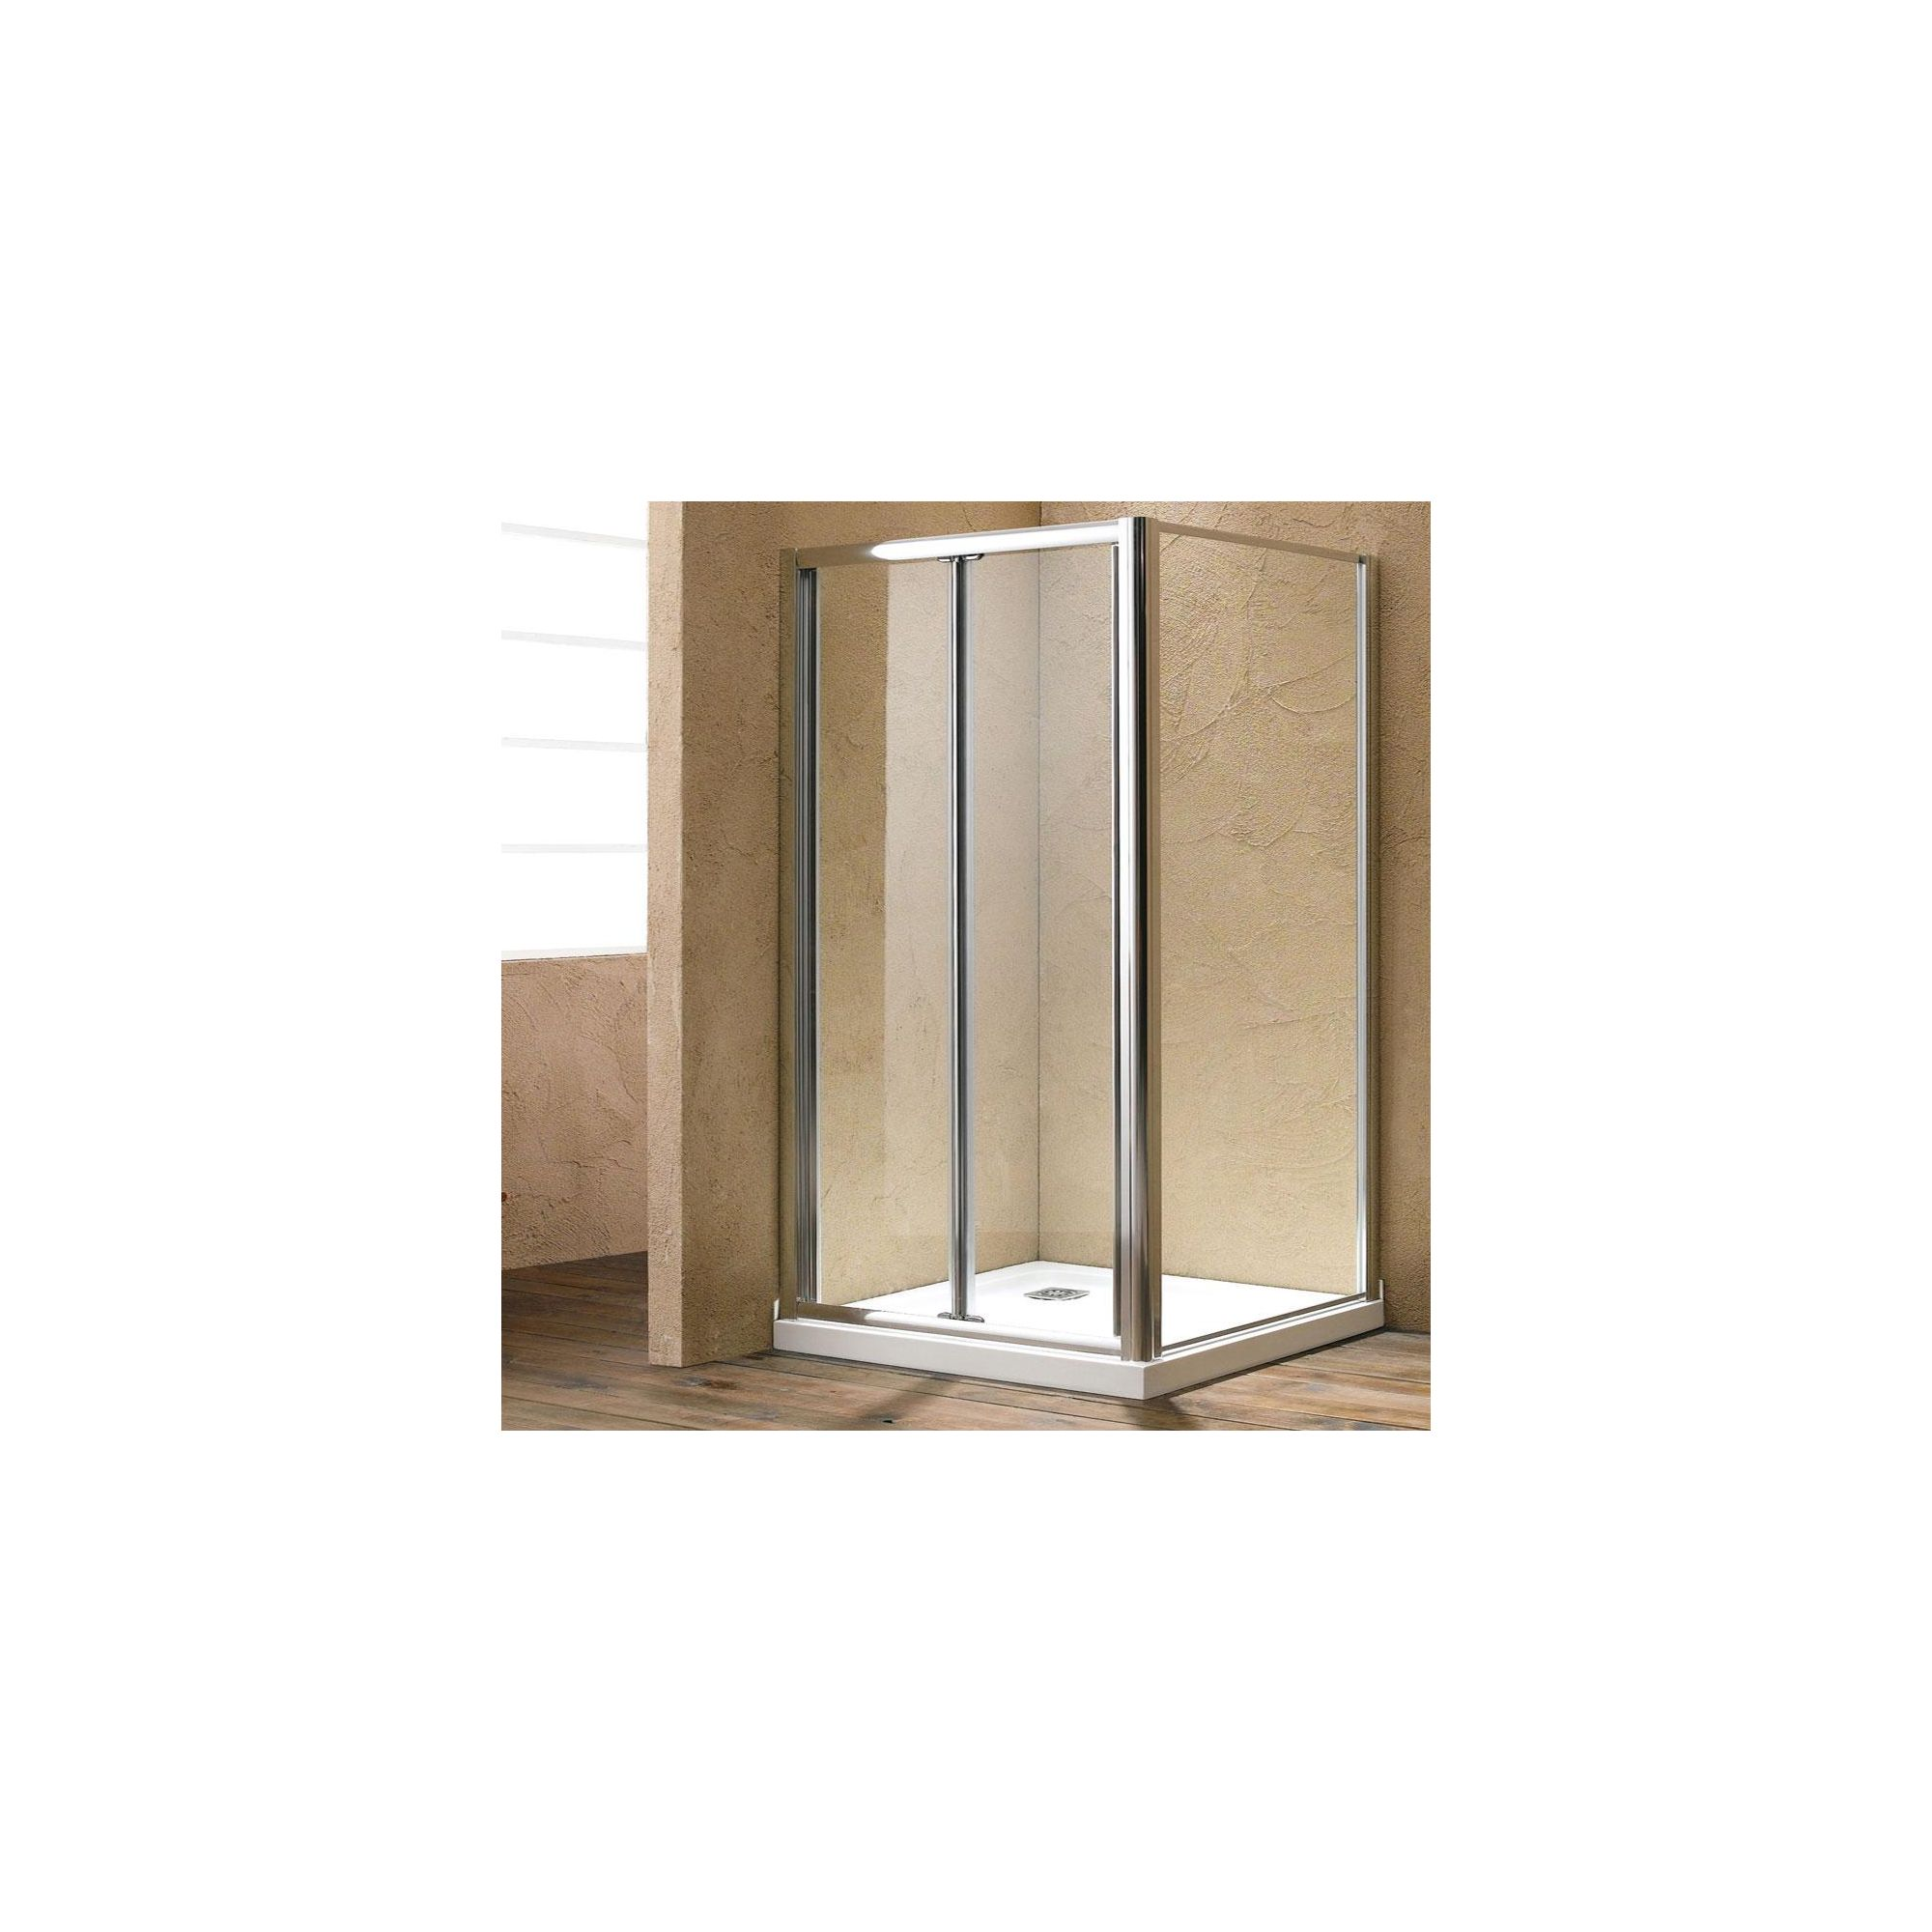 Duchy Style Twin Bi-Fold Door Shower Enclosure, 1000mm x 760mm, 6mm Glass, Low Profile Tray at Tesco Direct